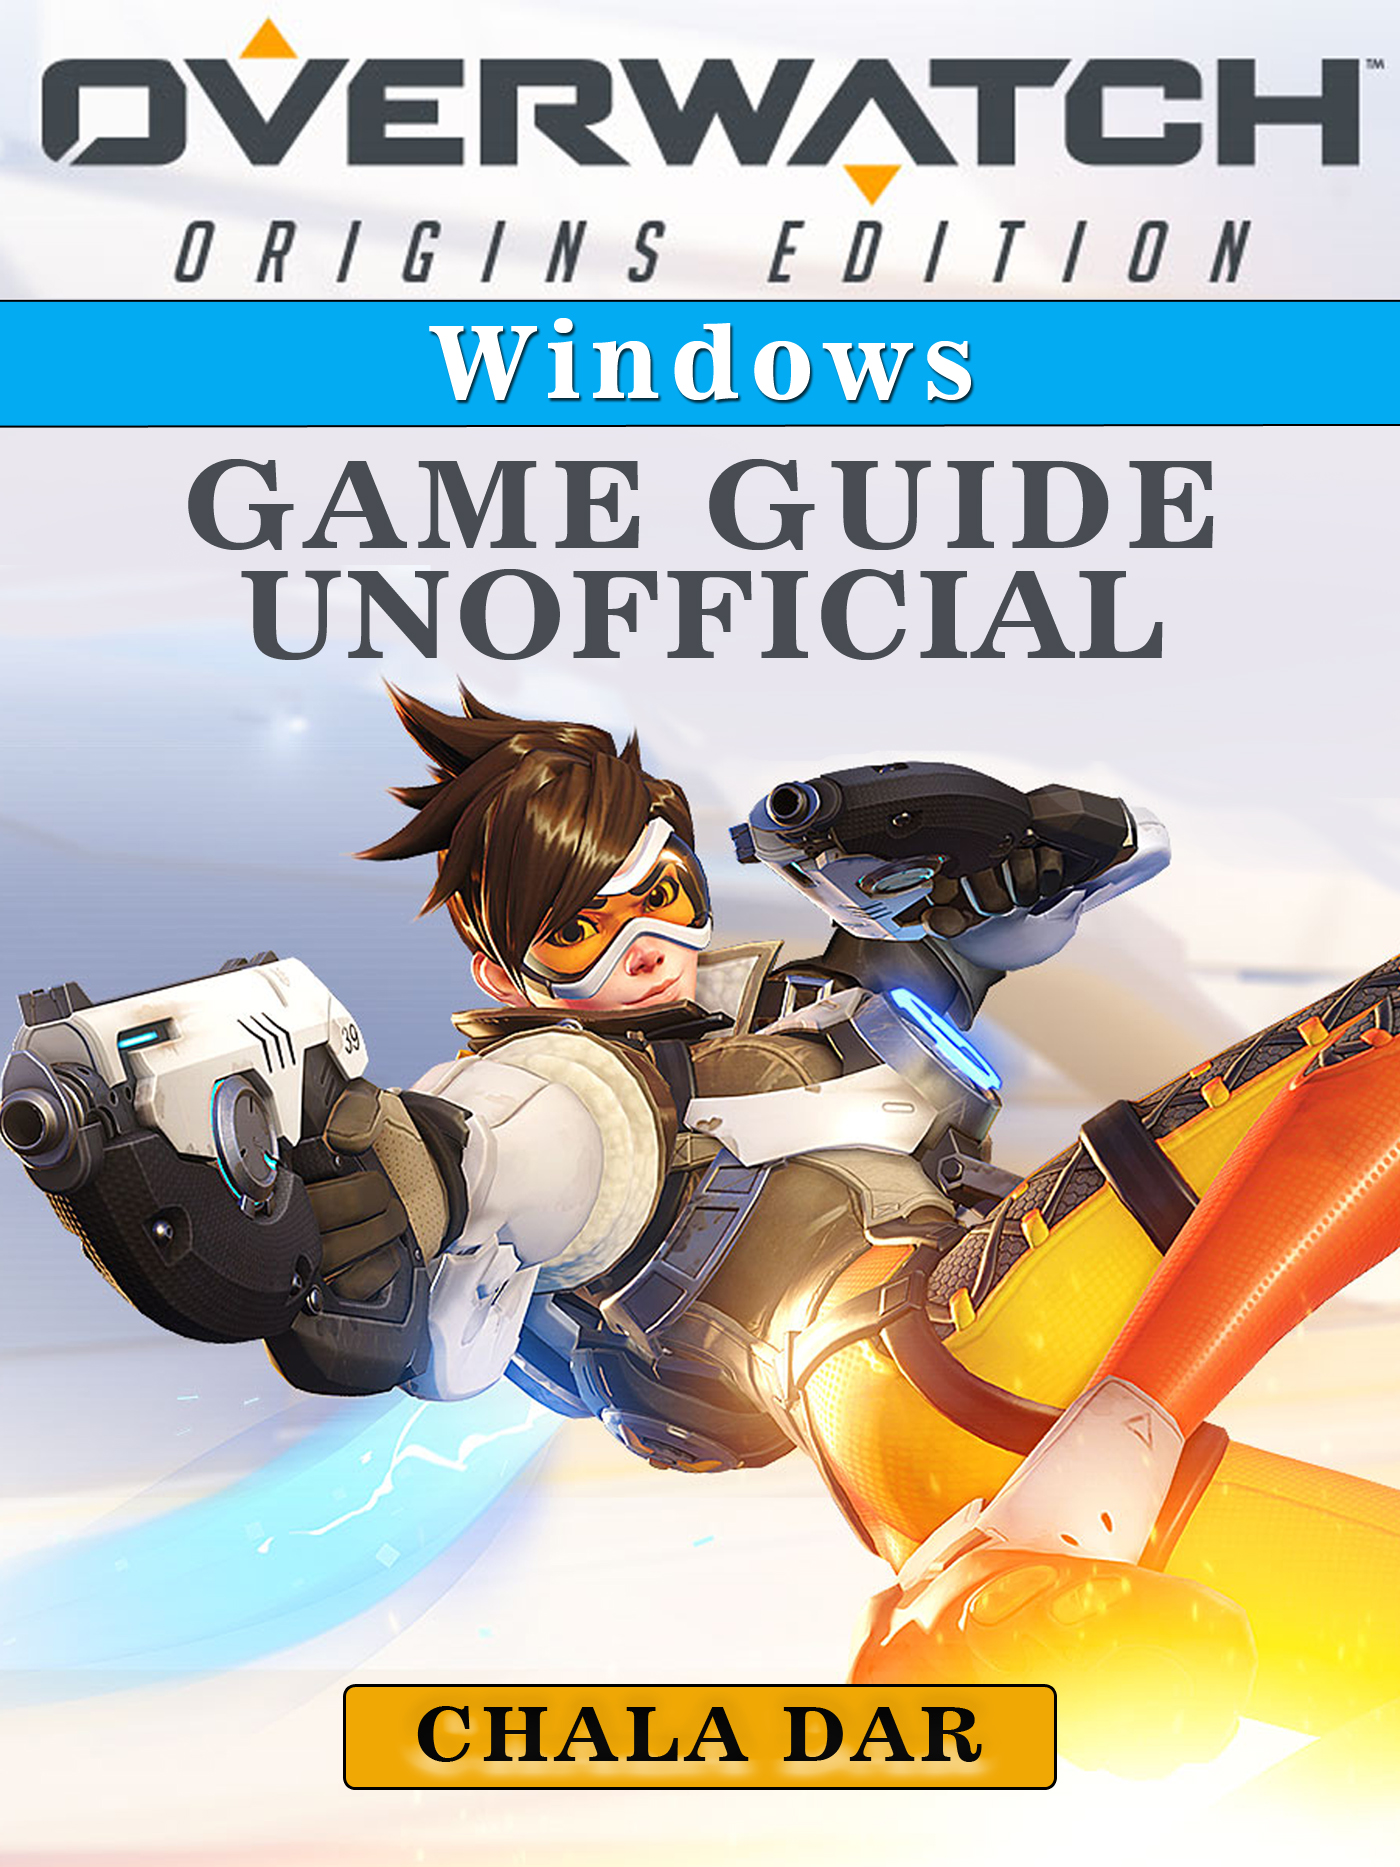 Overwatch Origins Edition Windows Game Guide Unofficial By Chala Dar